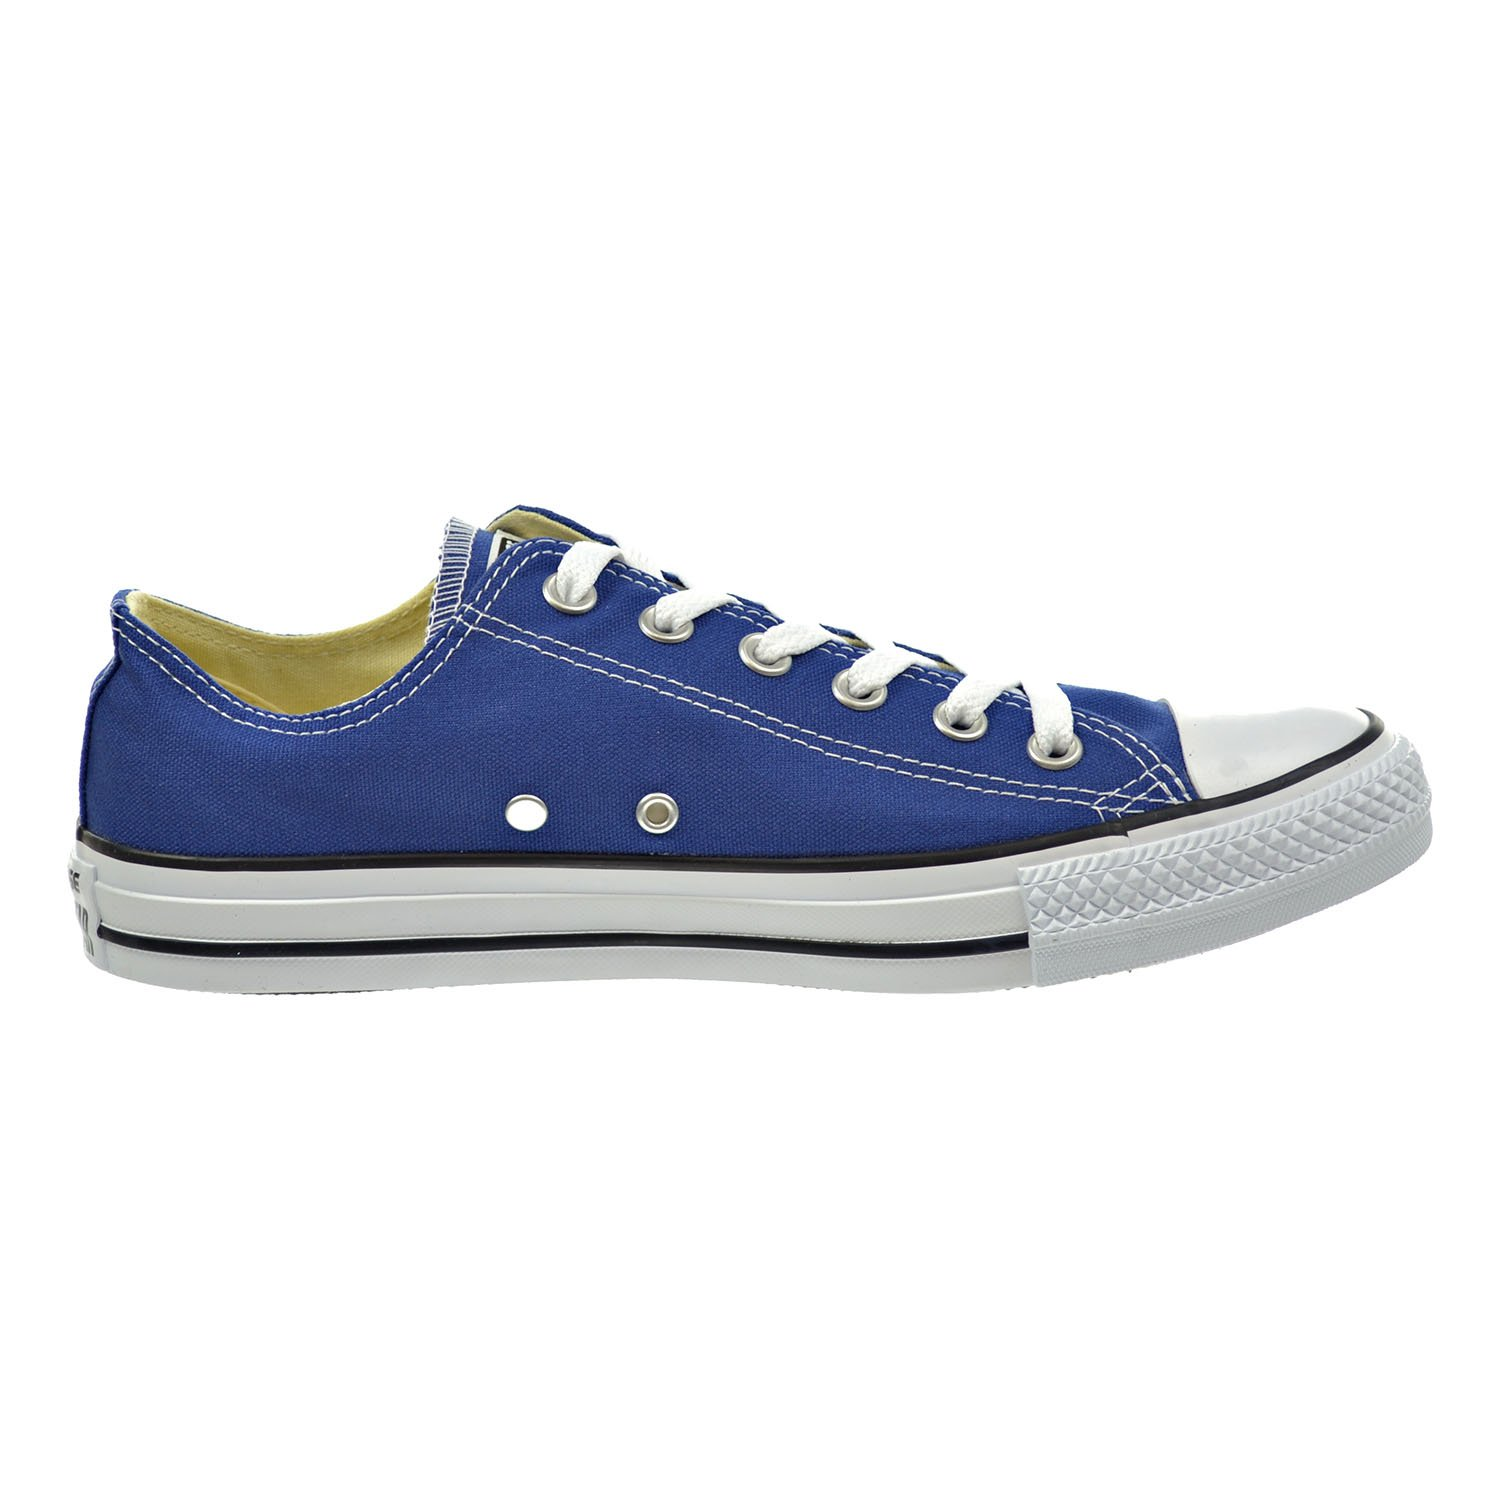 Converse Chuck Taylor All Star Core Ox B01ES0ZLJC 11 D(M) US|Blue/White